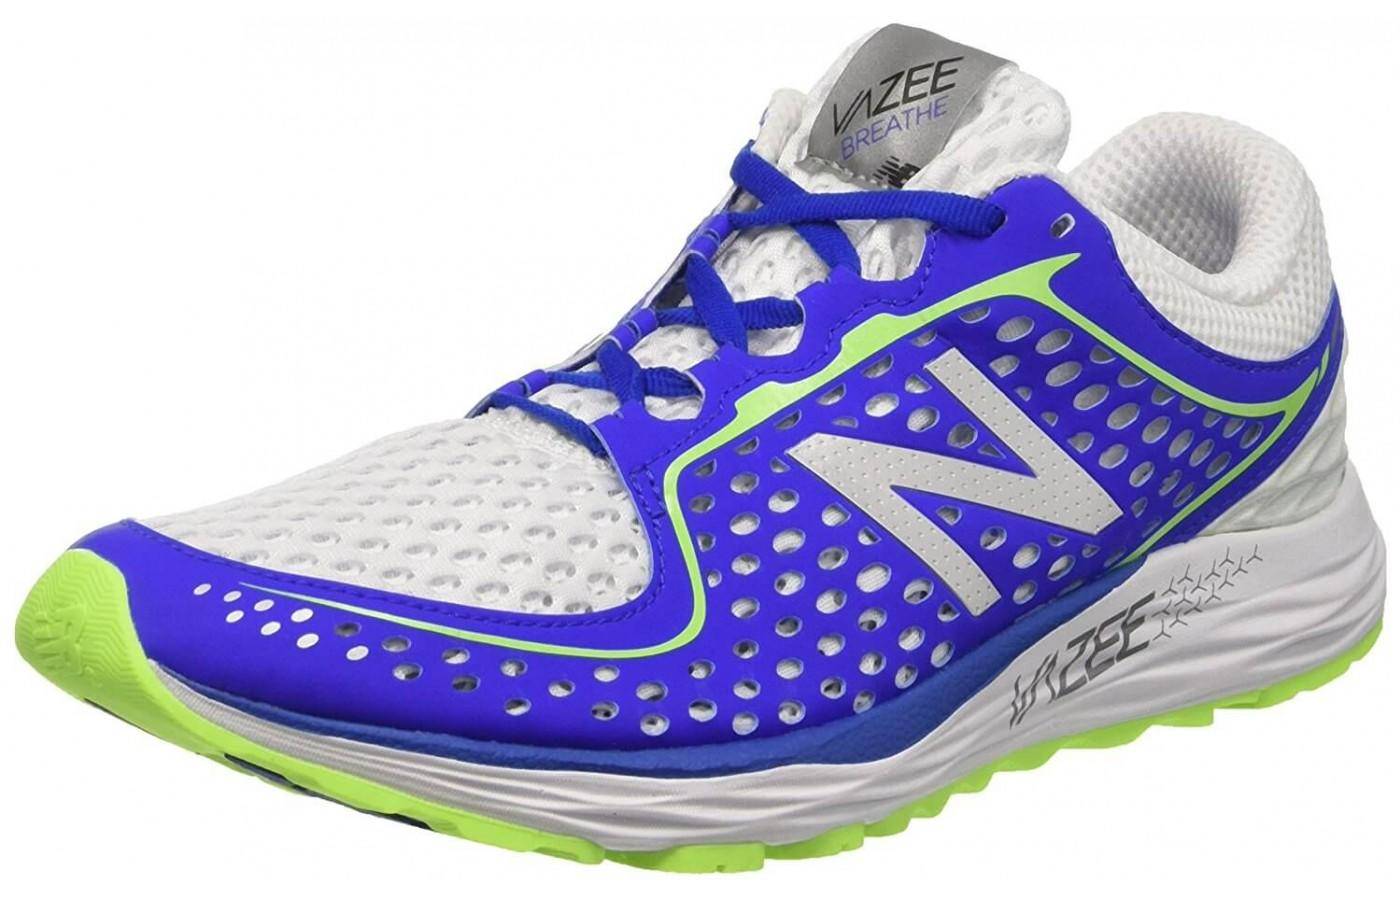 62341bd4889fc The synthetic perforated rib cage upper secures the foot in the New Balance  Vazee Breathe.